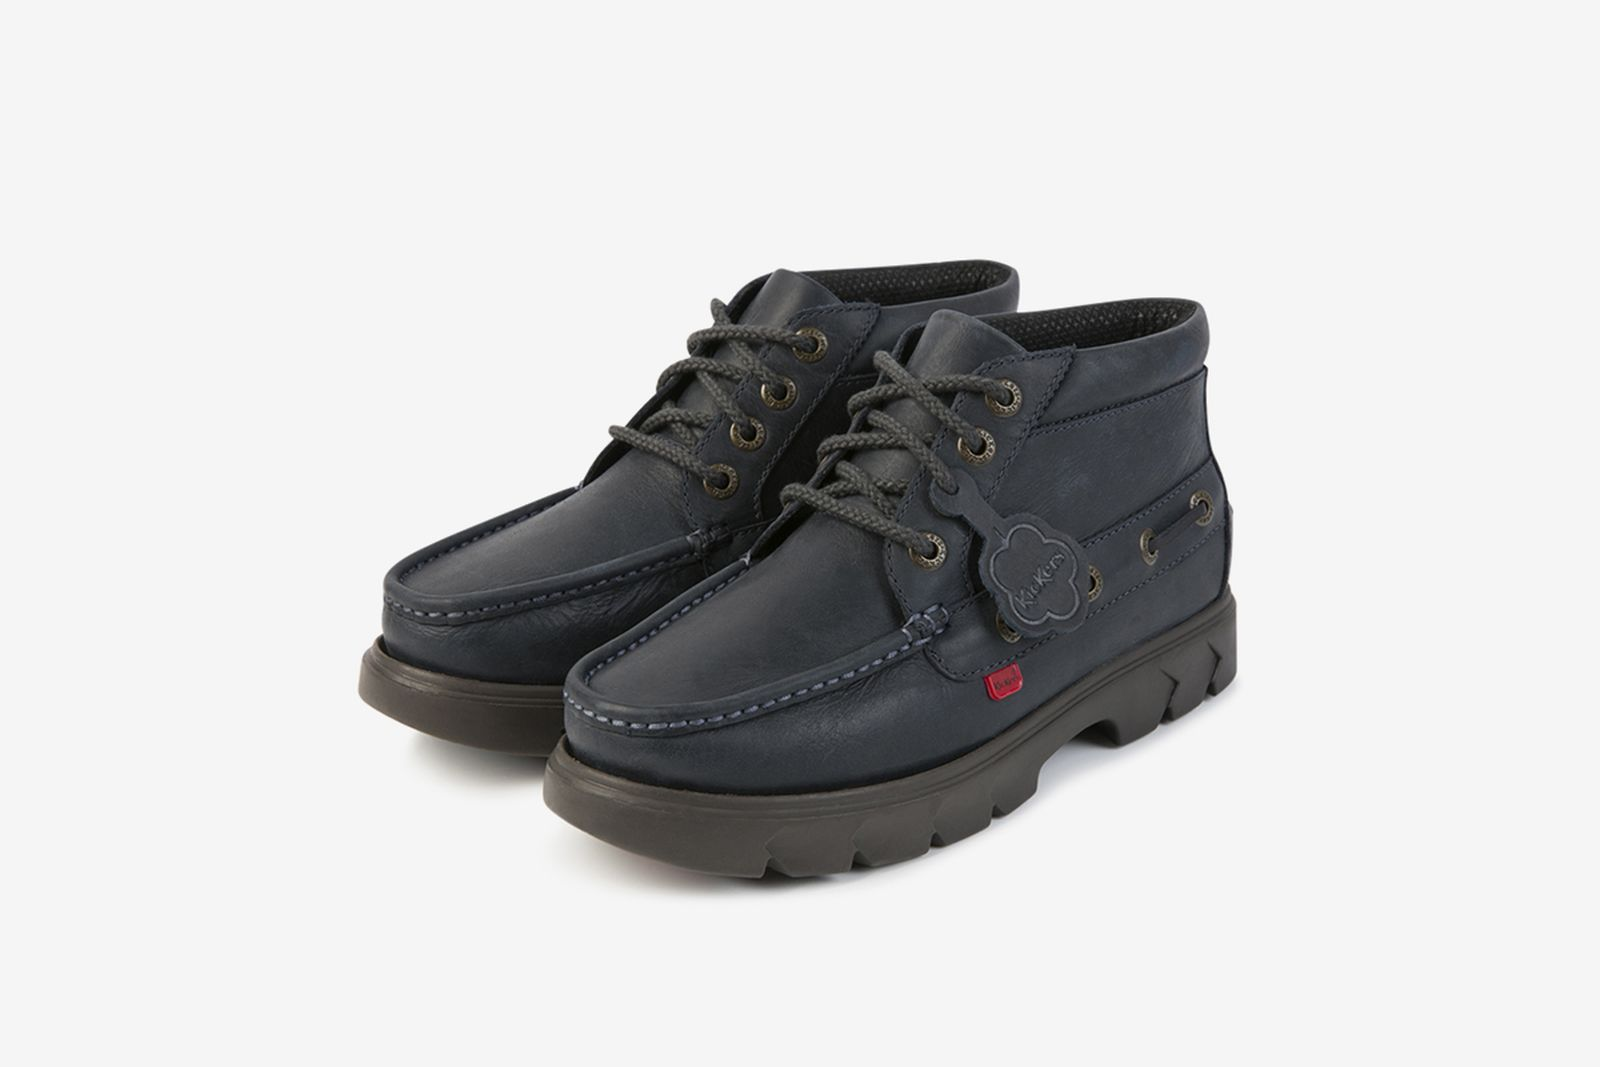 Kickers FW19 shoes